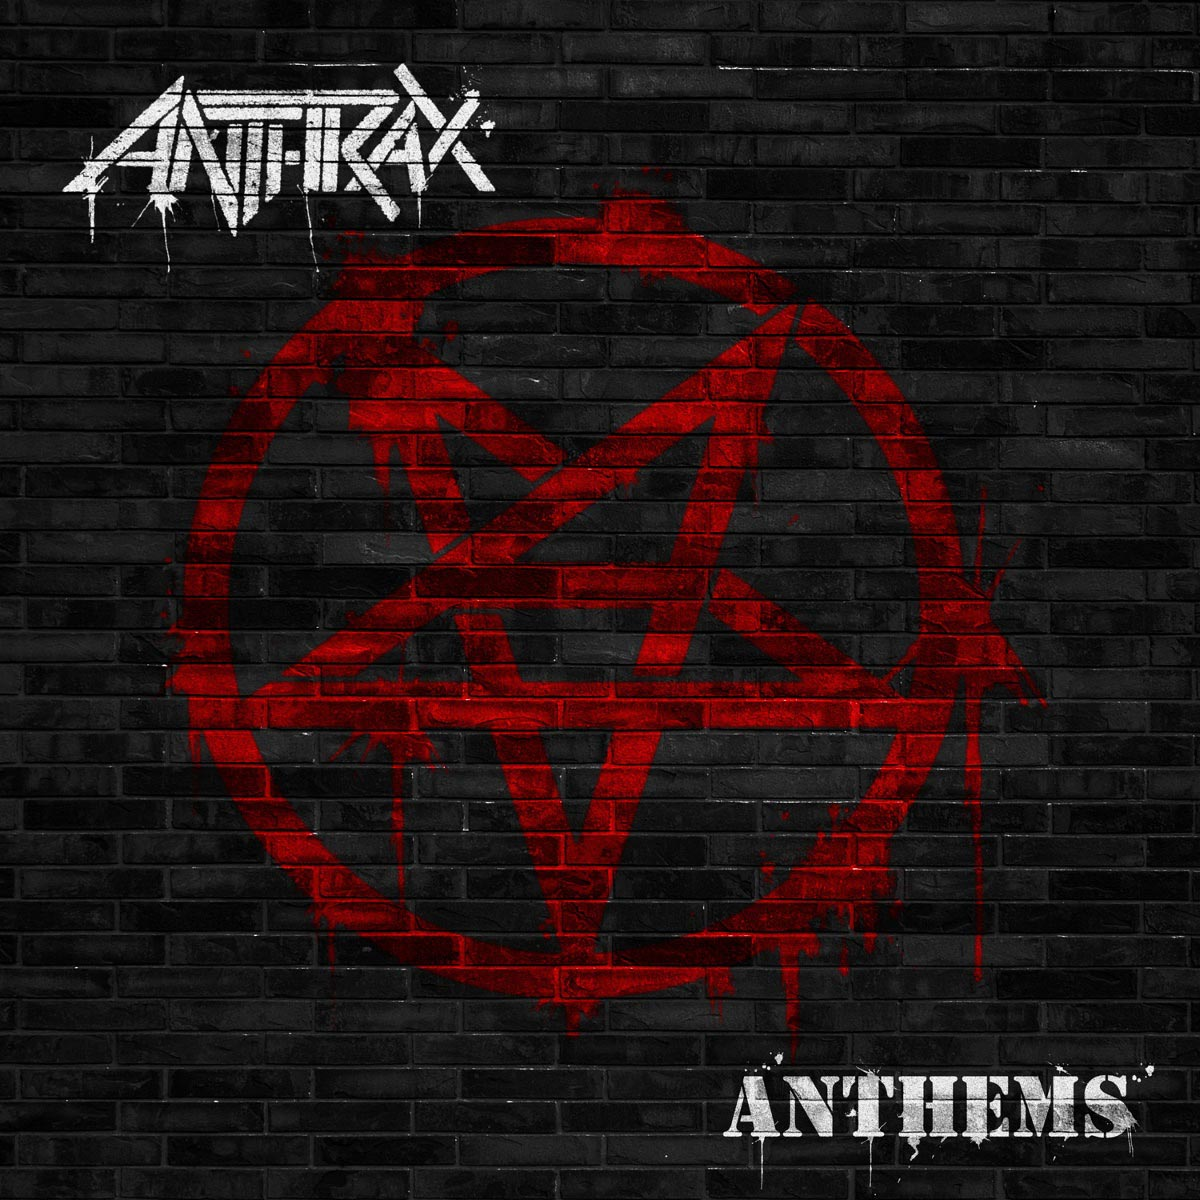 Anthrax - Anthems